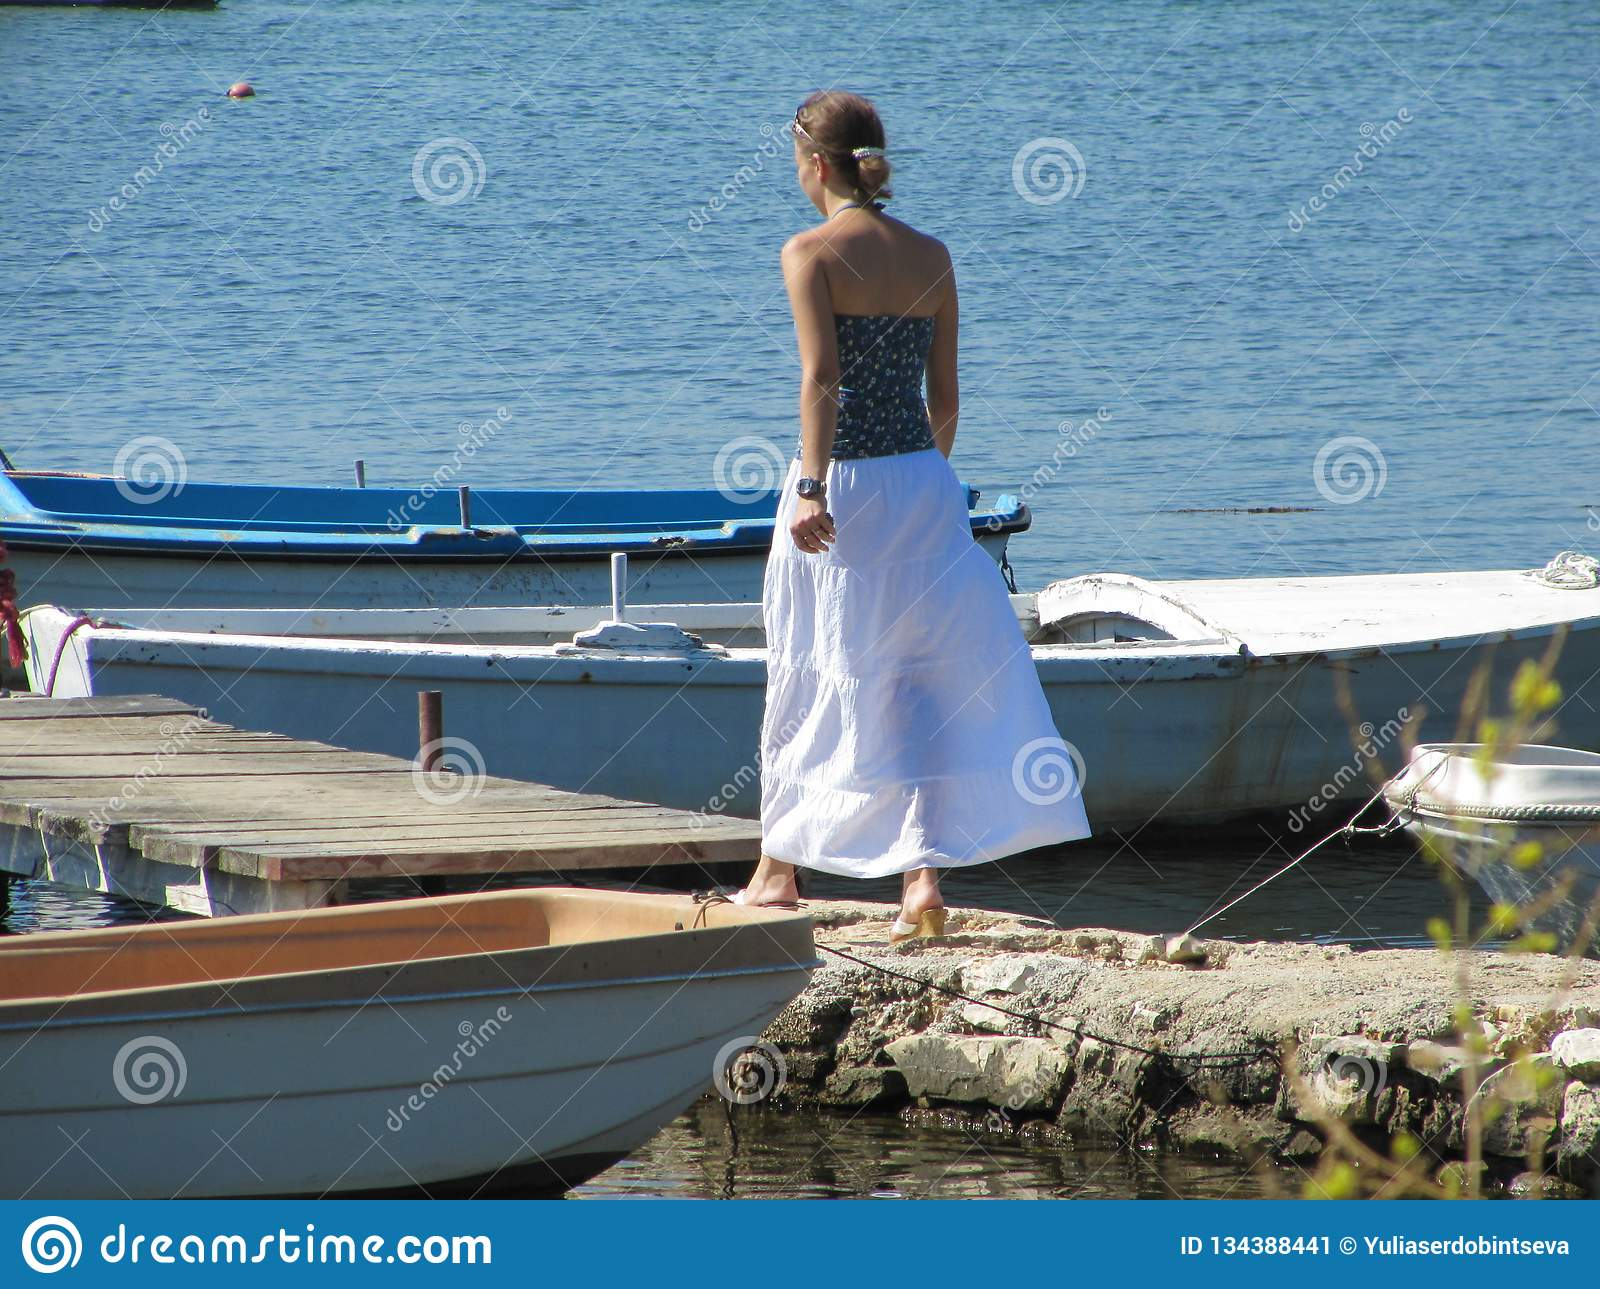 Girl goes along the beach on a Sunny day. ahead of the wooden bridge to which the boats are tied